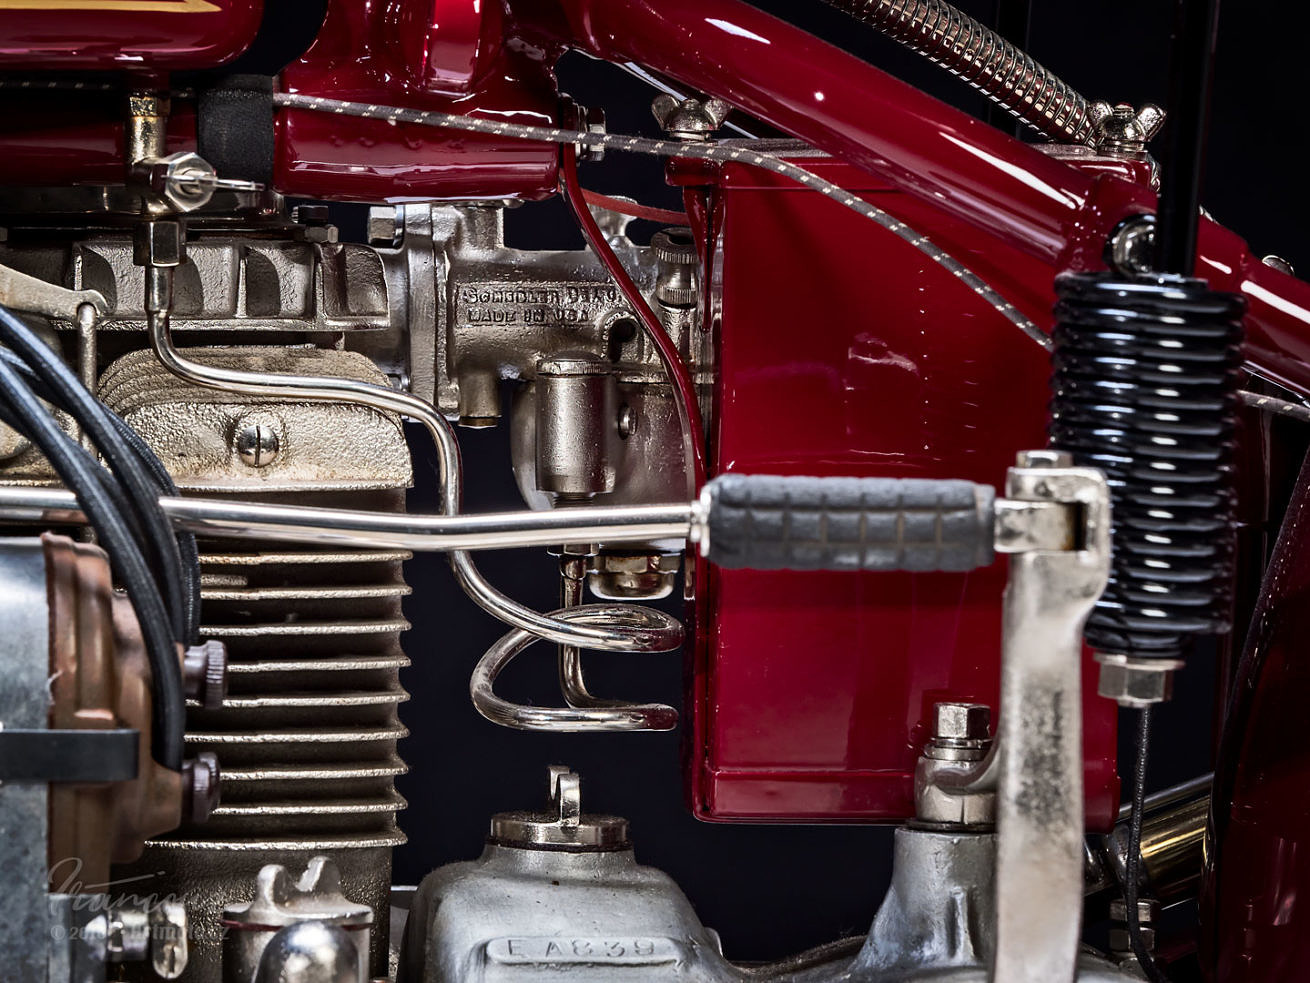 Left view of engine vintage Indian Four 1930